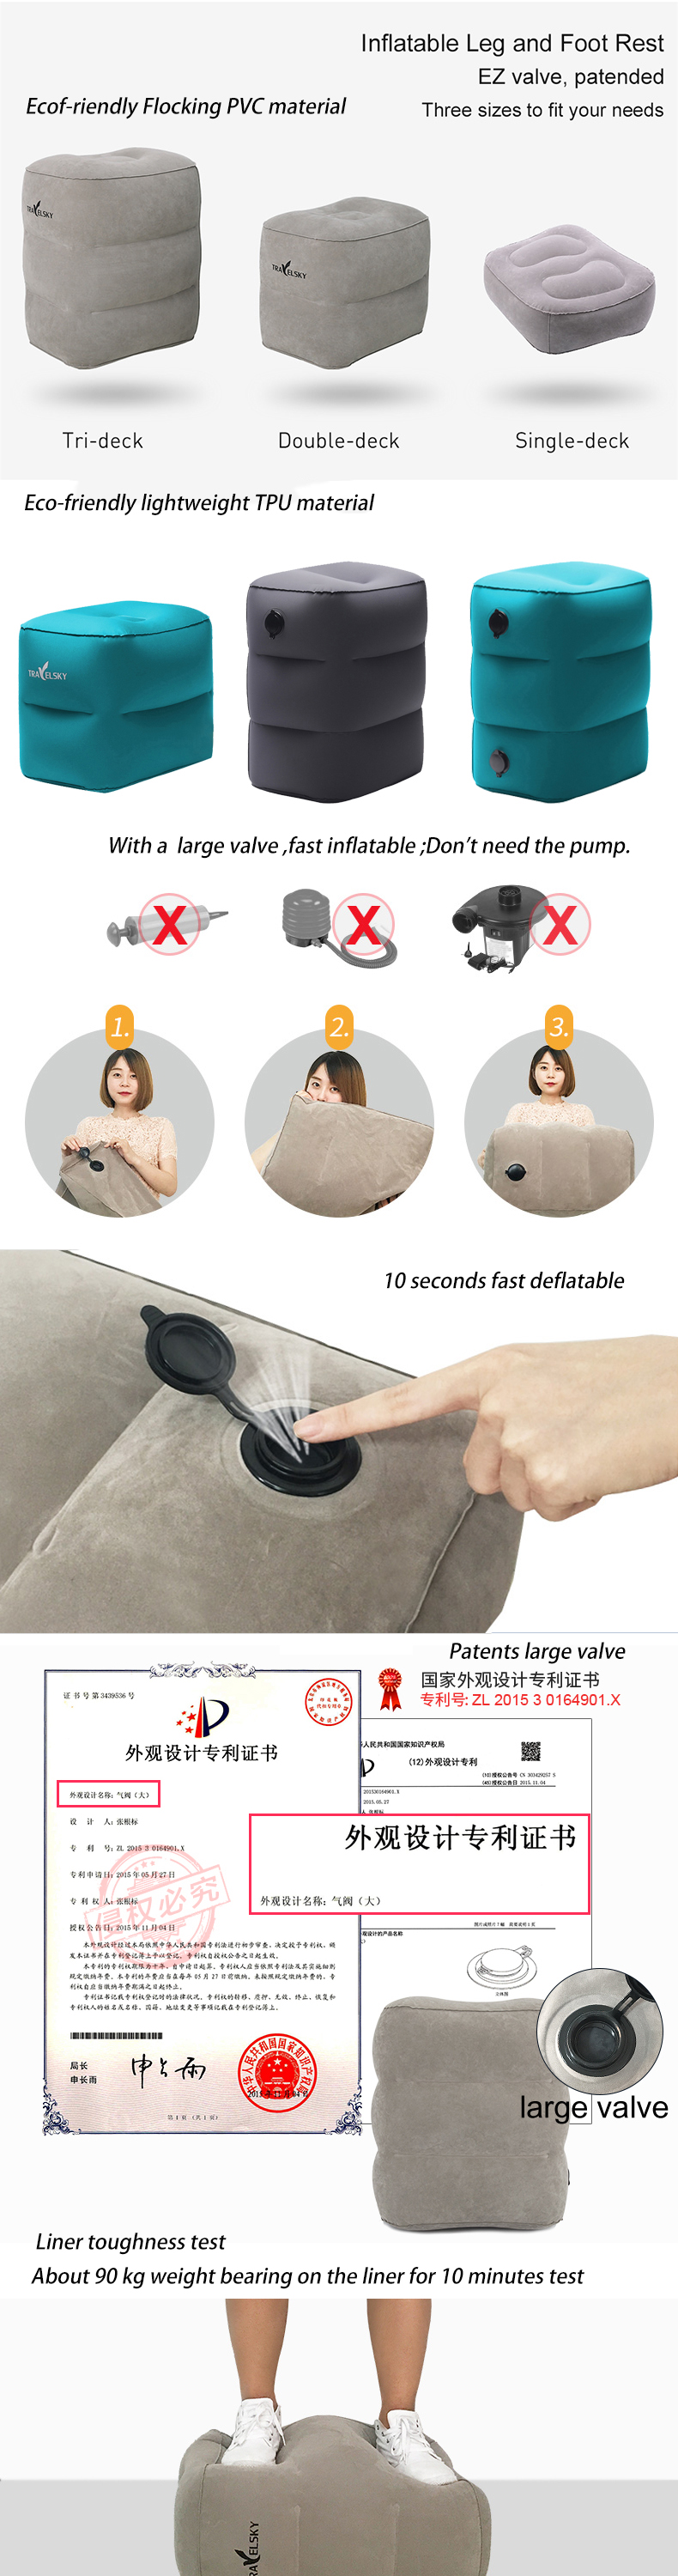 2019 Hot Sale Travel Inflatable Pillow Plane Train Foot MAT Pad Air Inflatable Large Valve Footrest Pillow 3 Layer Cushion